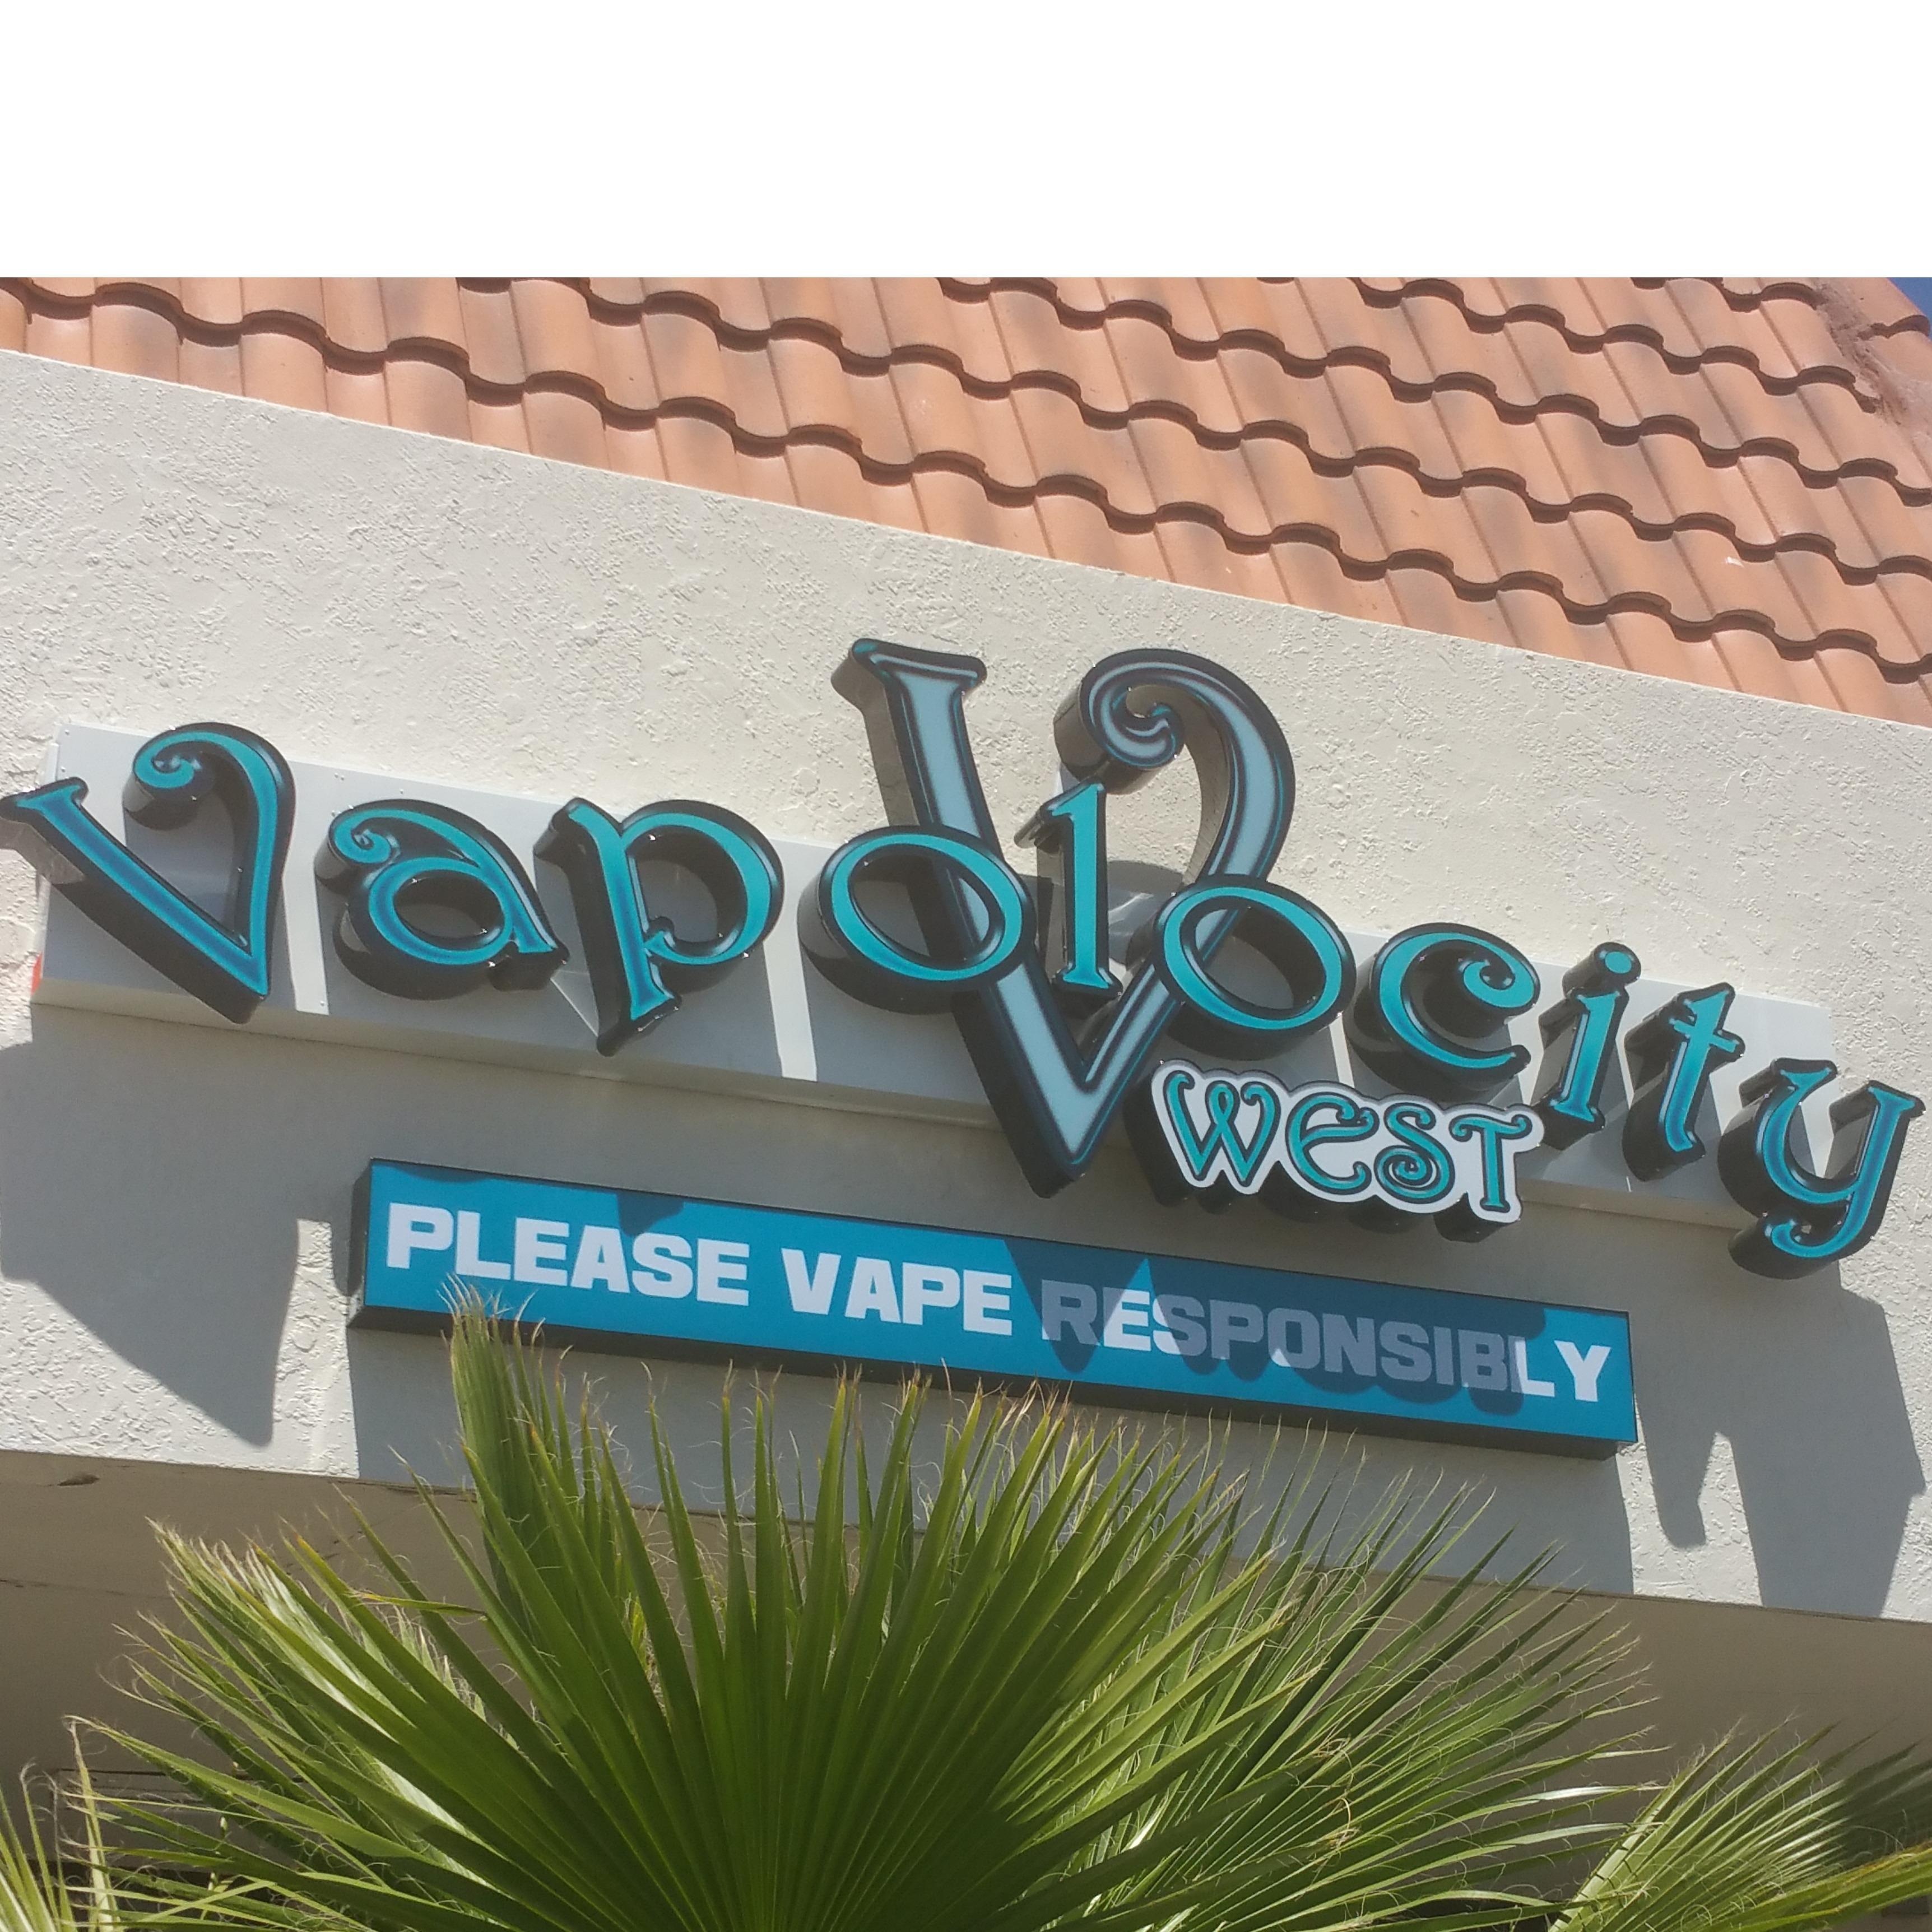 VAPOLOCITY West Best Vape Shop and EJuice in El Paso & Ft Bliss - El Paso, TX - Computer & Electronic Stores